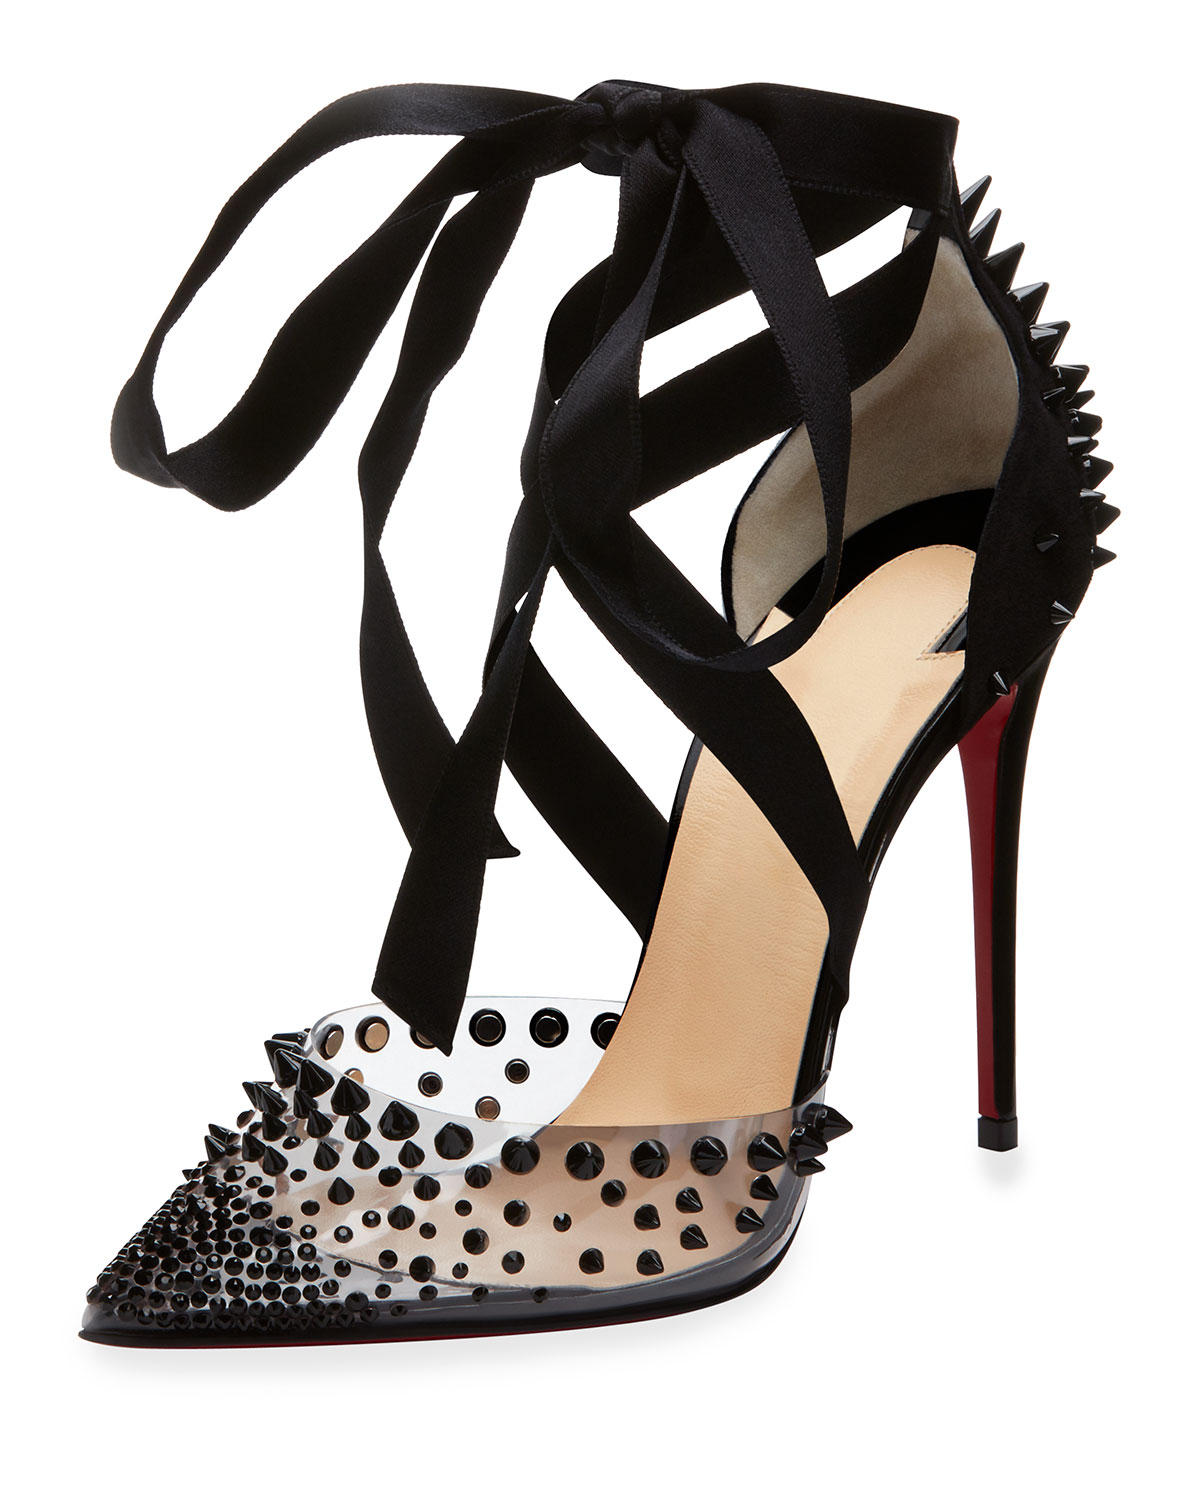 f8638f64971 Christian Louboutin Mechante Reine Spikes Red Sole Pumps